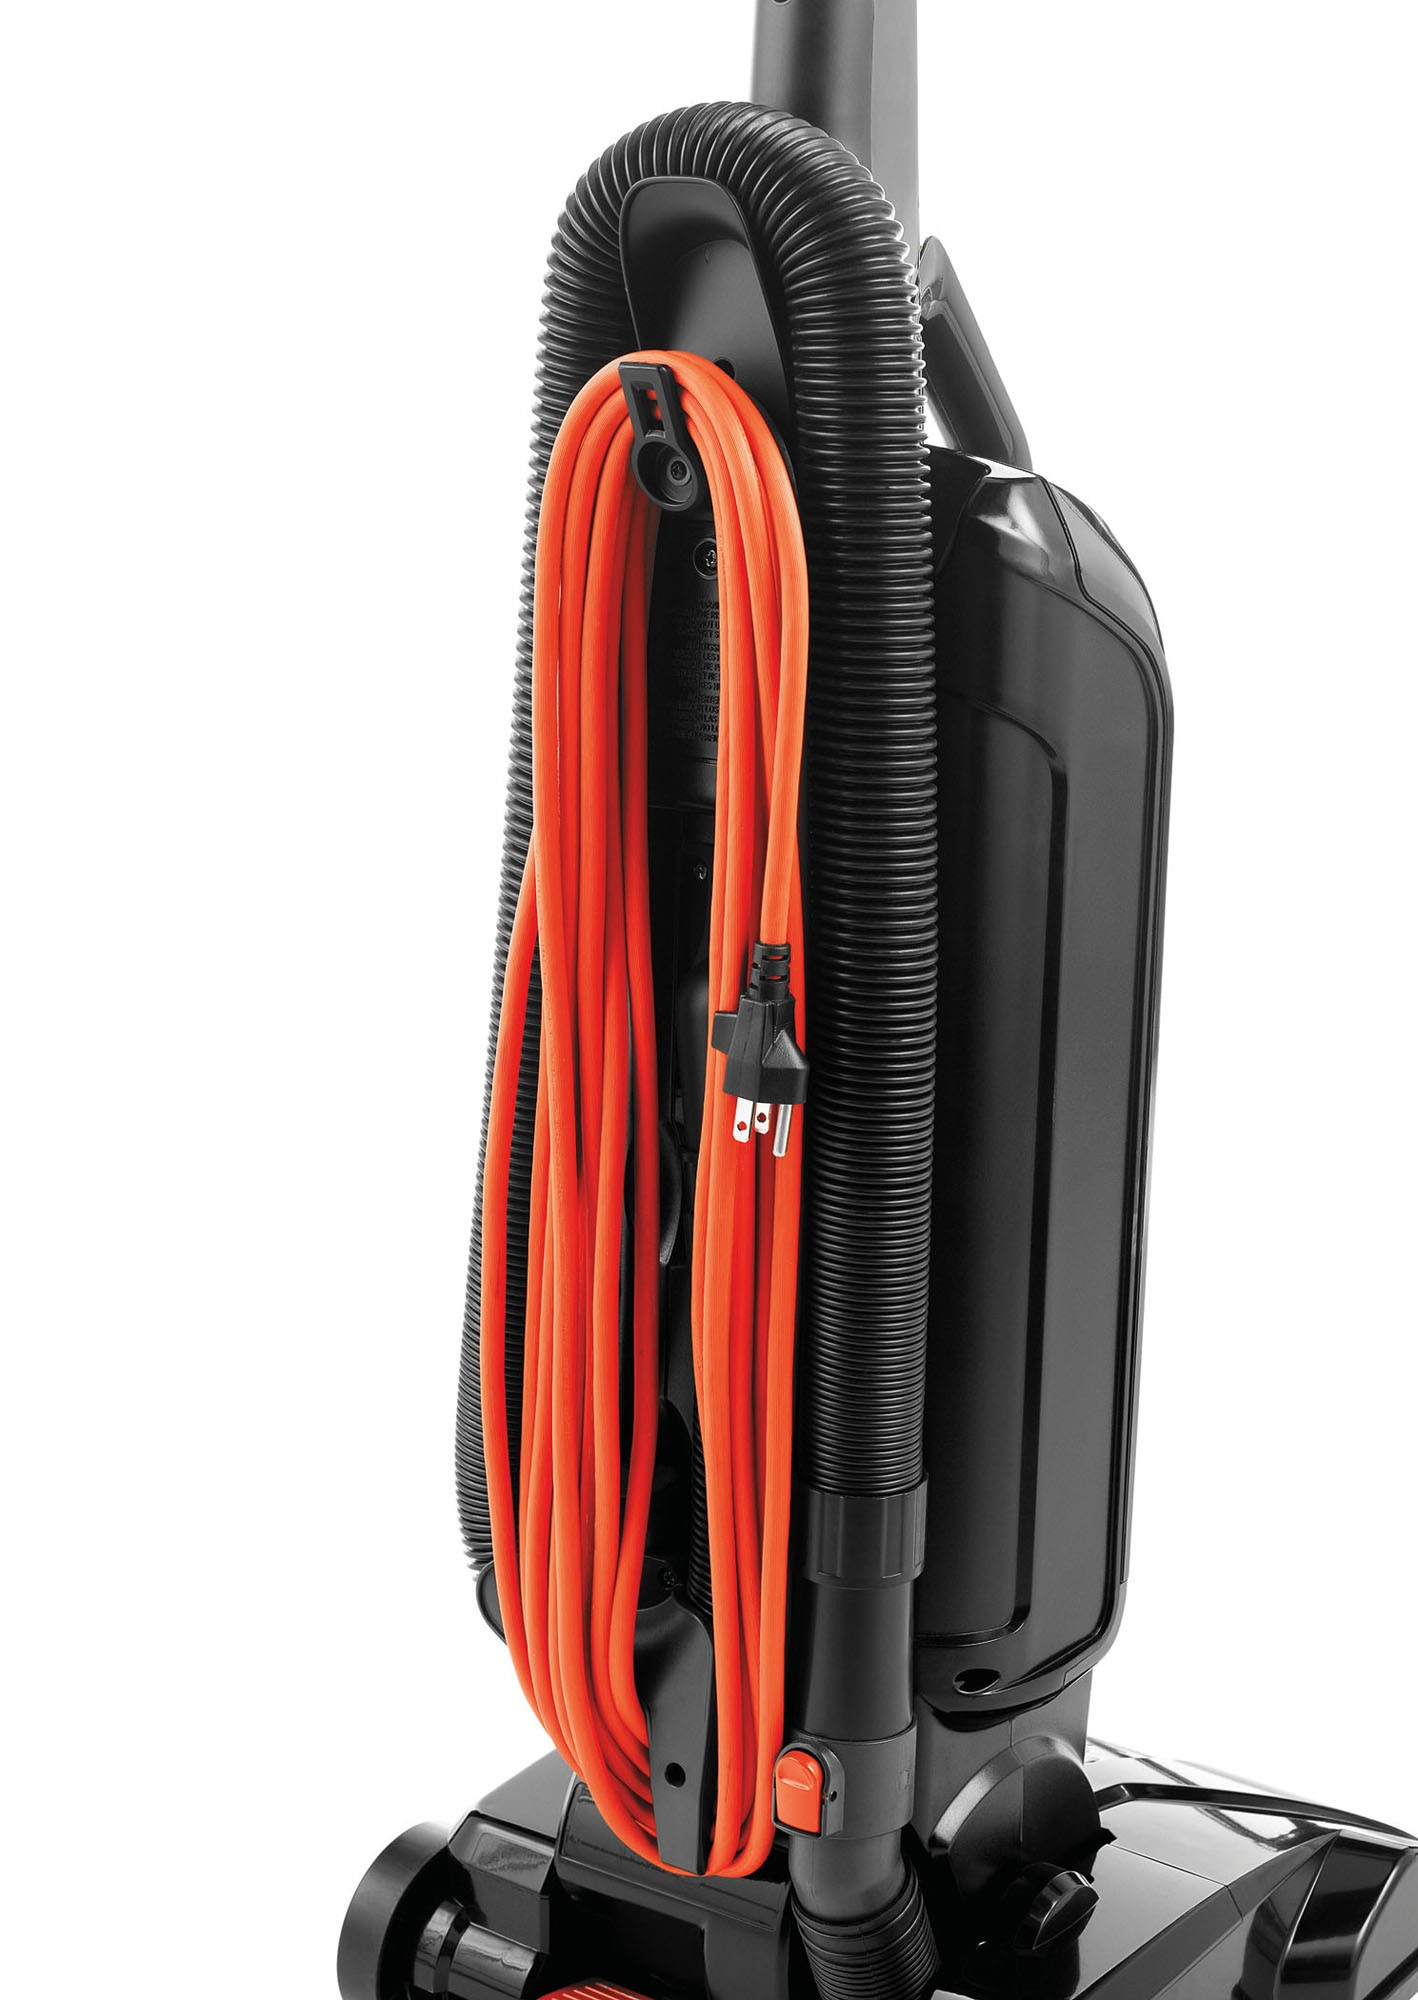 TaskVac Hard Bag Lightweight Commercial Upright - Back Cord